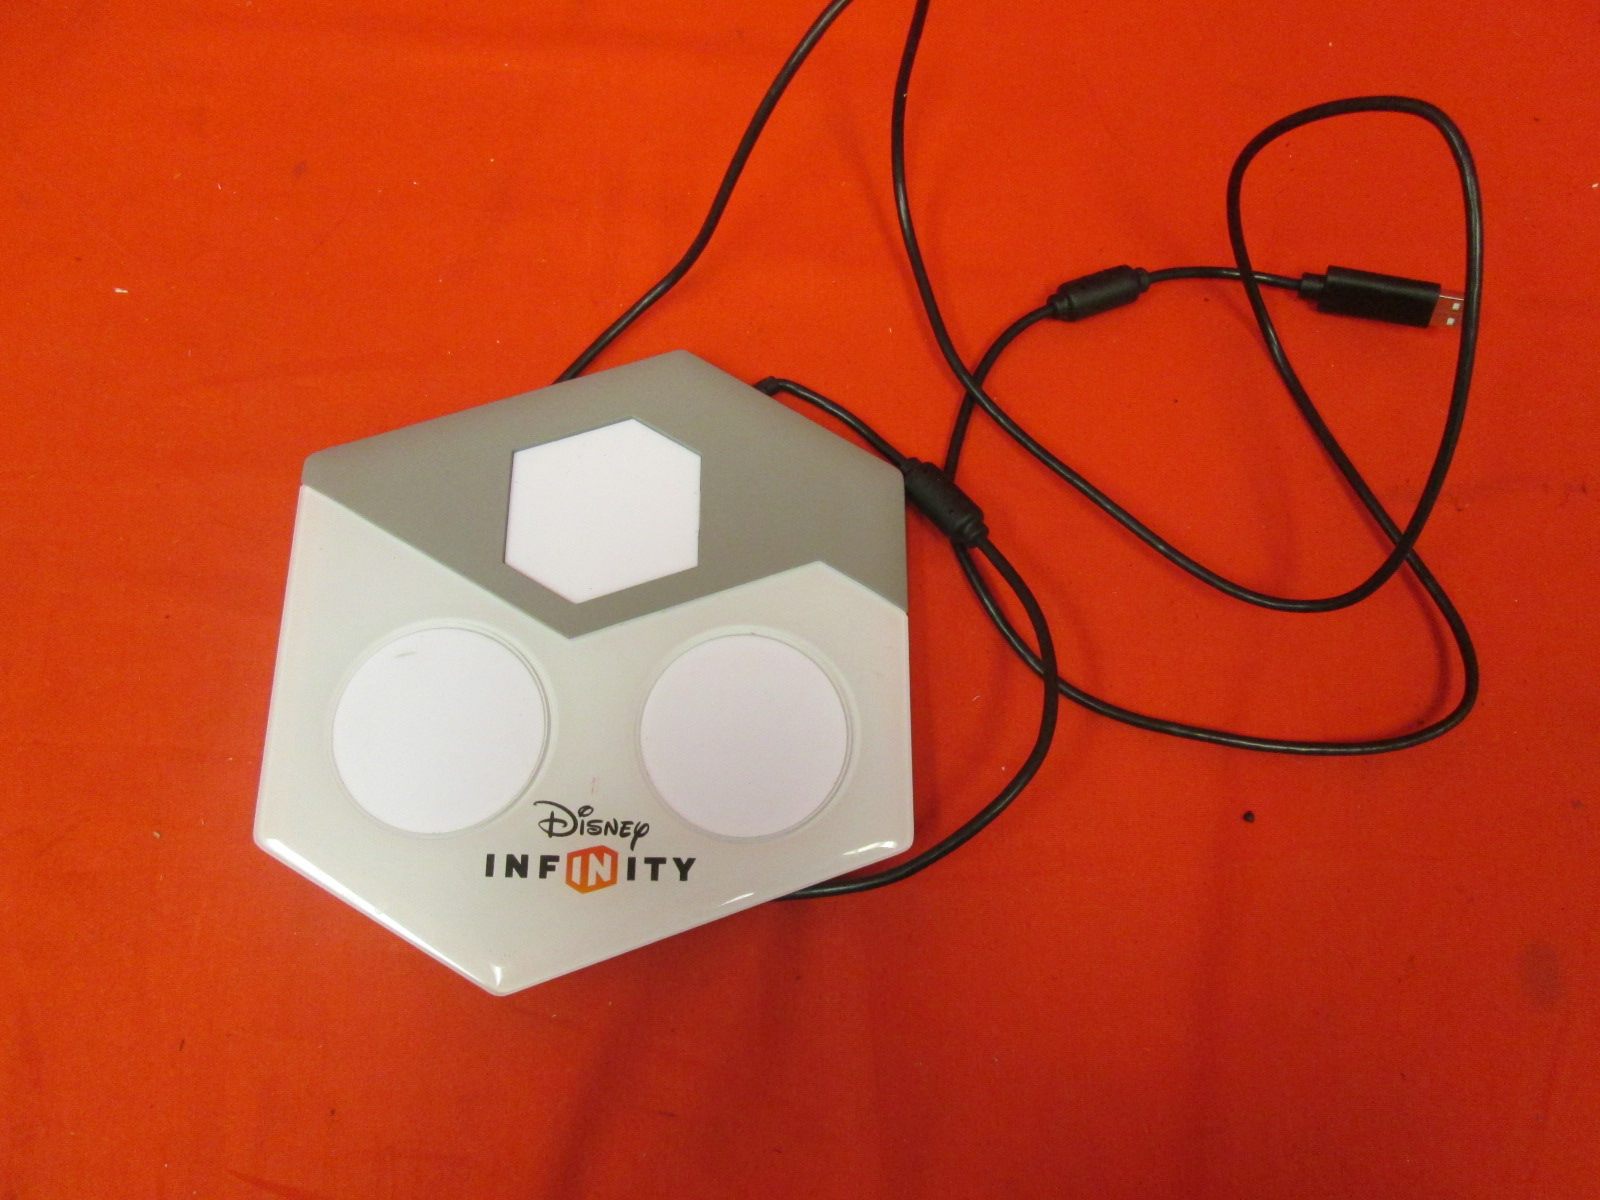 Disney Infinity Replacement Portal Base Only U PS3 PS4 Game Or Figures